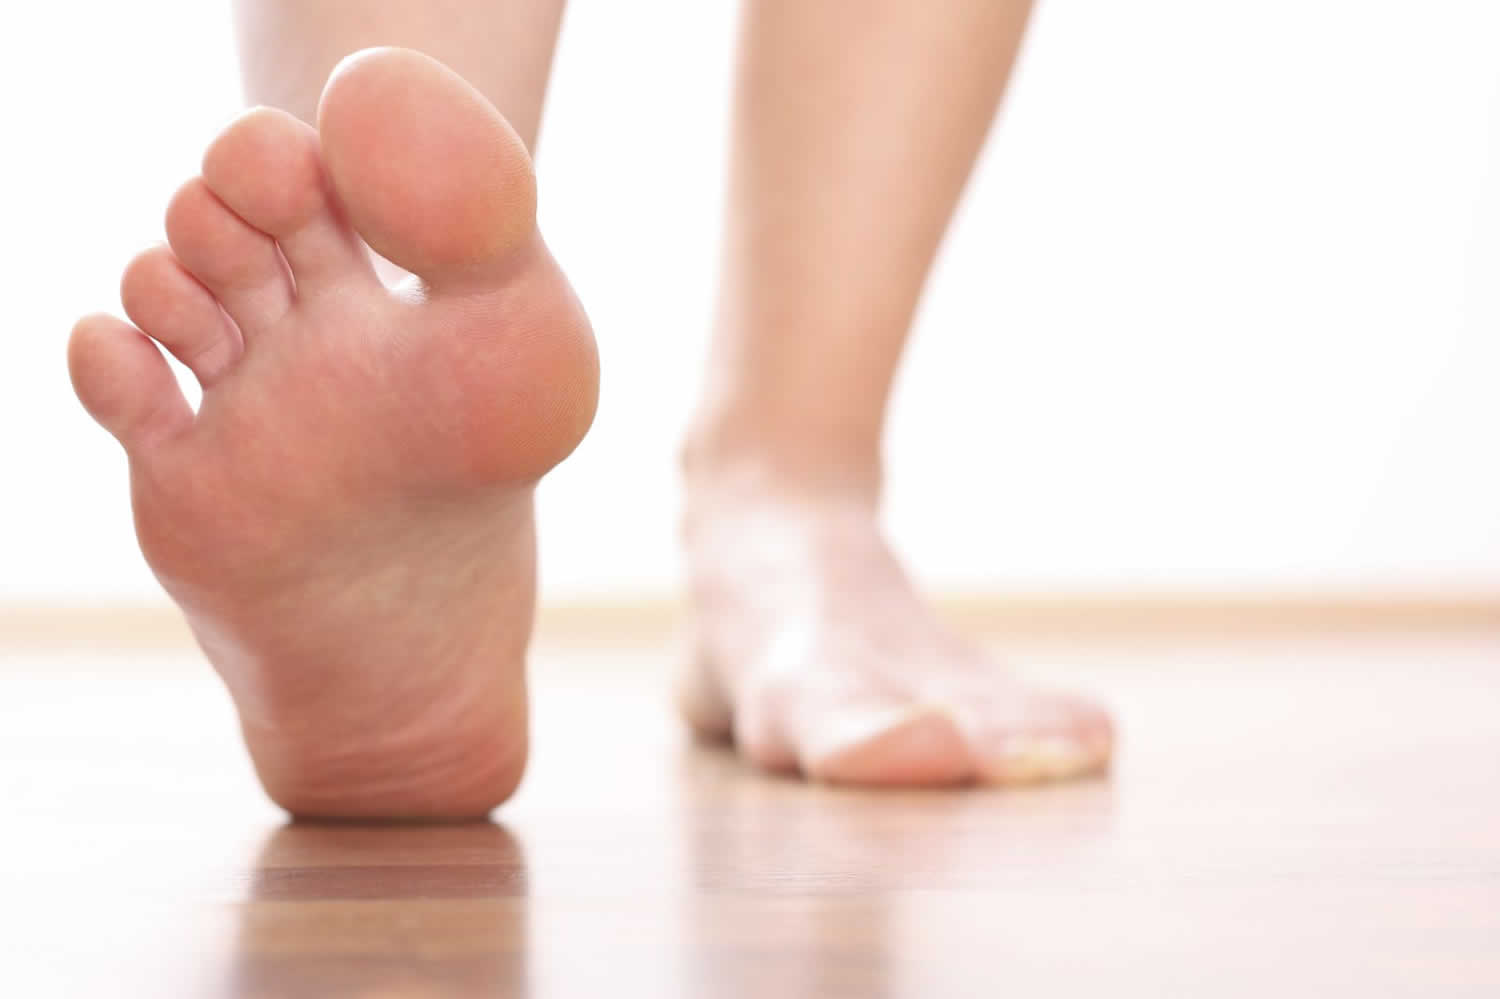 Blister On Foot Causes And How To Treat Foot Blisters